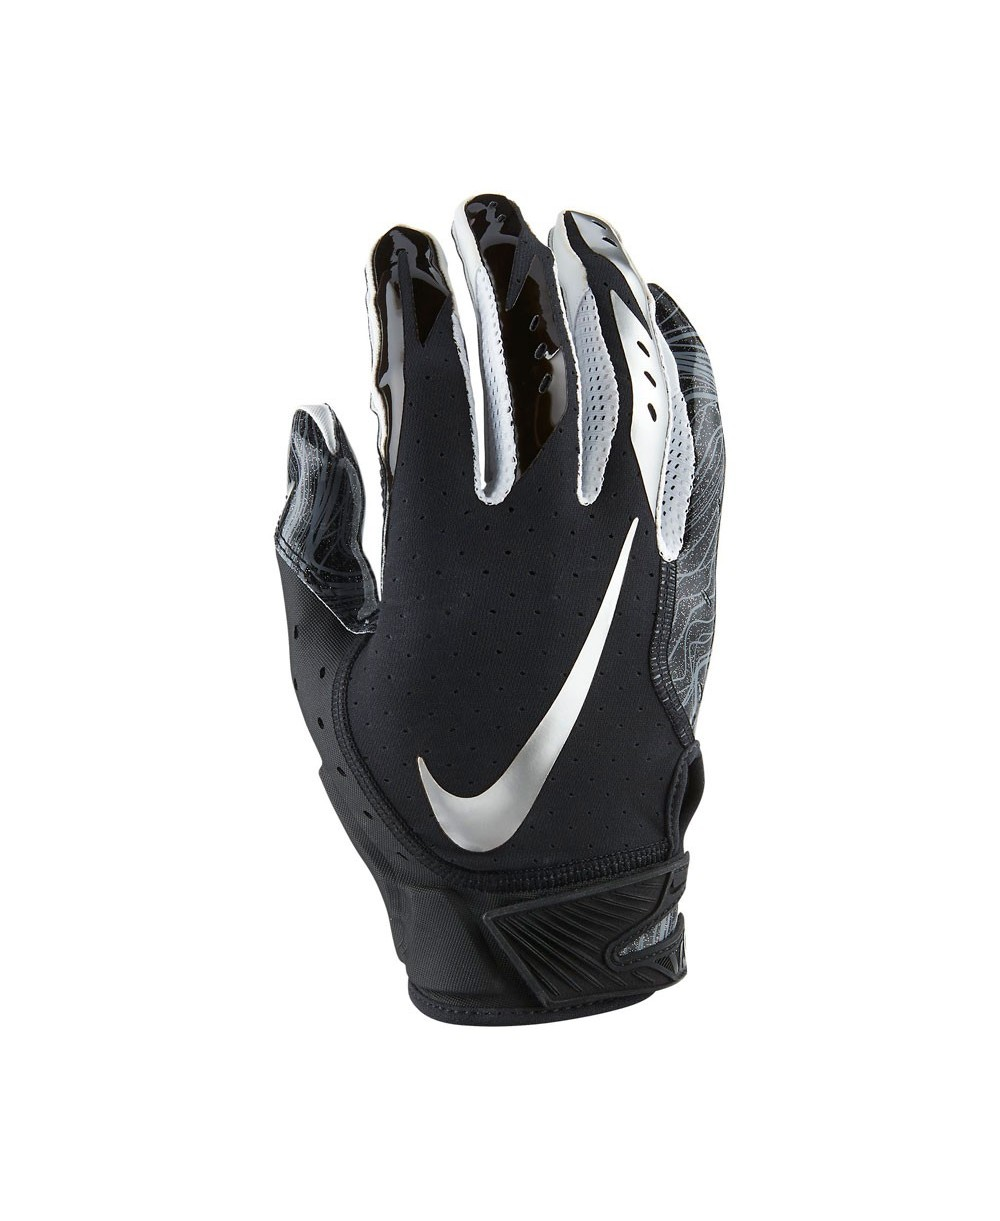 052b6bfee0a Vapor Jet 5 Men s American Football Gloves Black